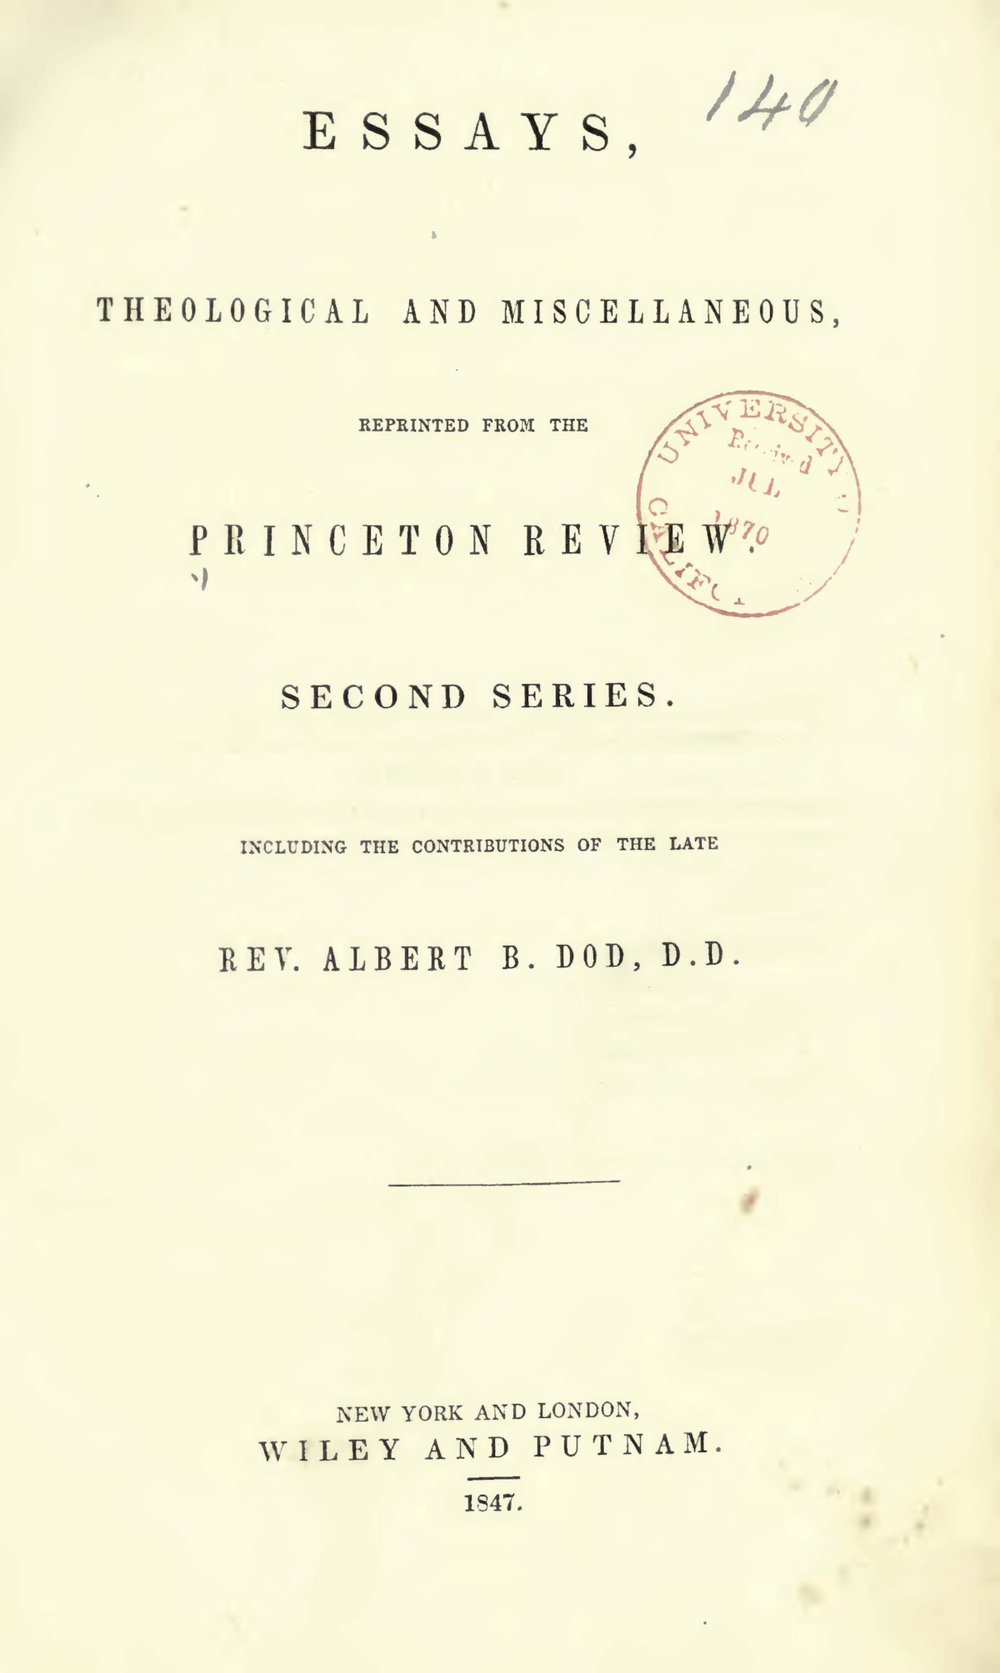 Articles by Albert Baldwin Dod herein include the topics of Capital Punishment, Phrenology, the Vestiges of Creation, Analytical Geometry, Oxford Architecture, and reviews of Mr. Finney and Dr. Beecher.